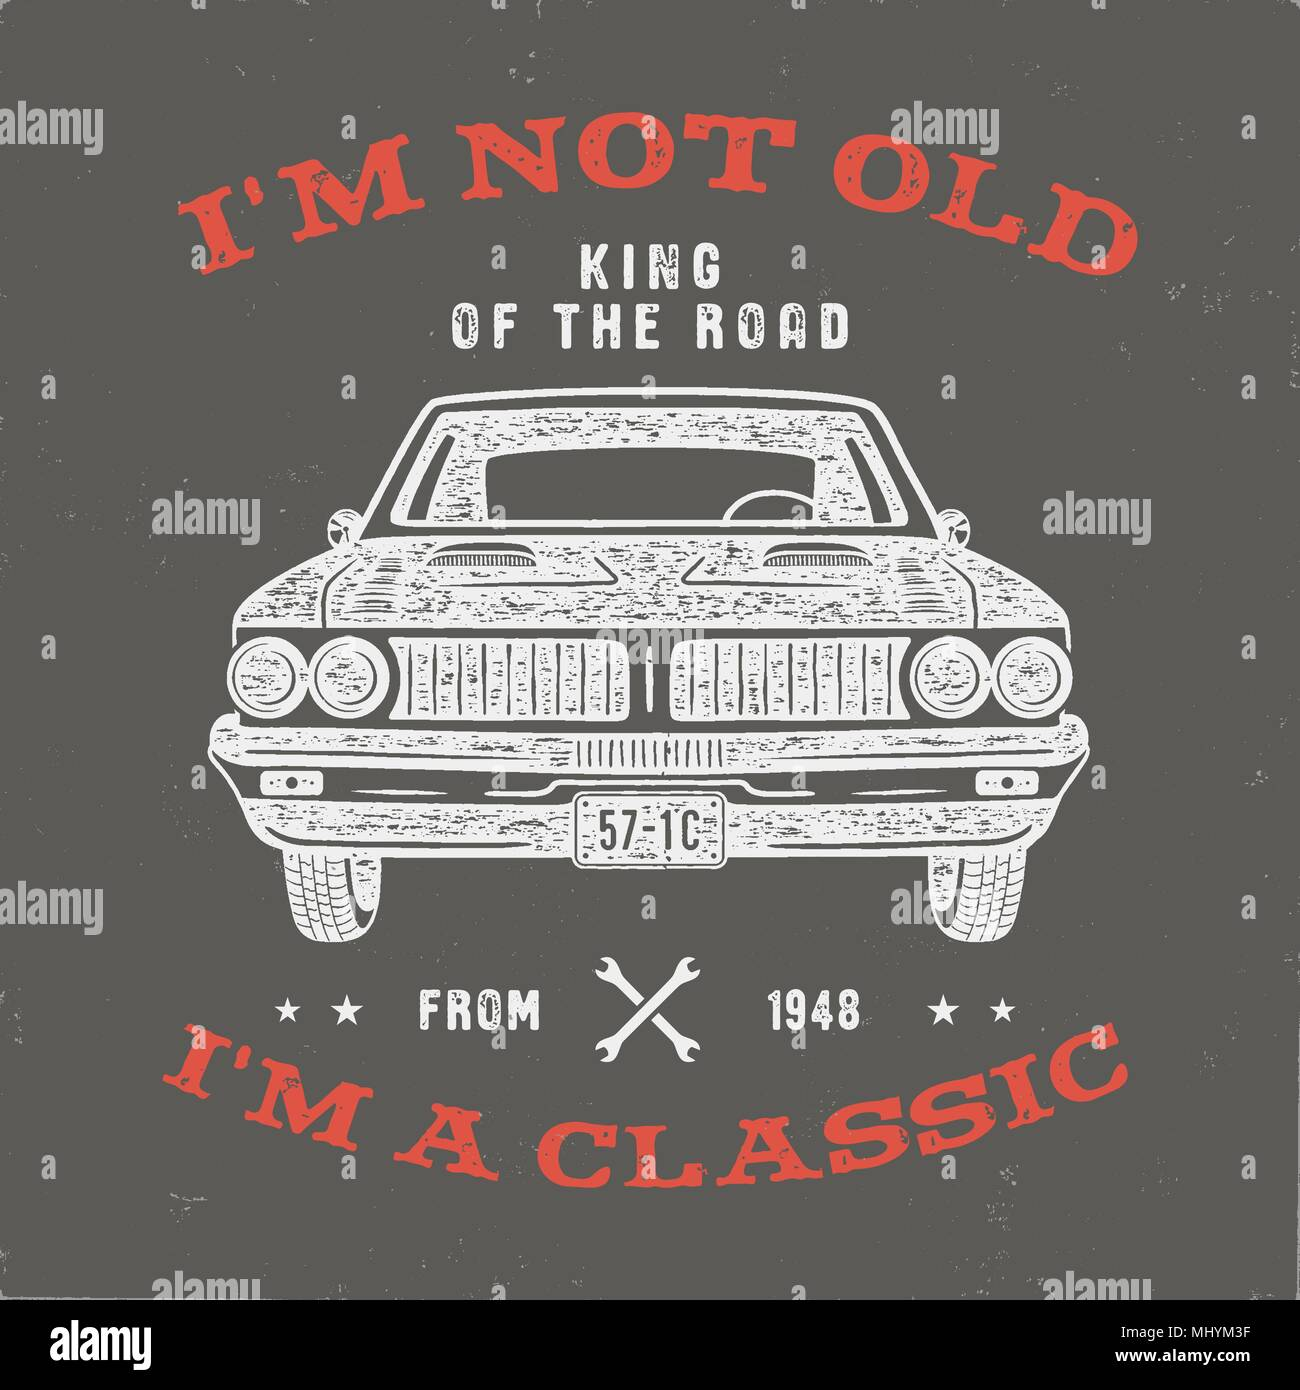 f308c889 70 Birthday Anniversary Gift T-Shirt. I'm not Old I'm a Classic, King of  the Road words with classic car. Born in 1948. Distressed retro style  poster, tee.